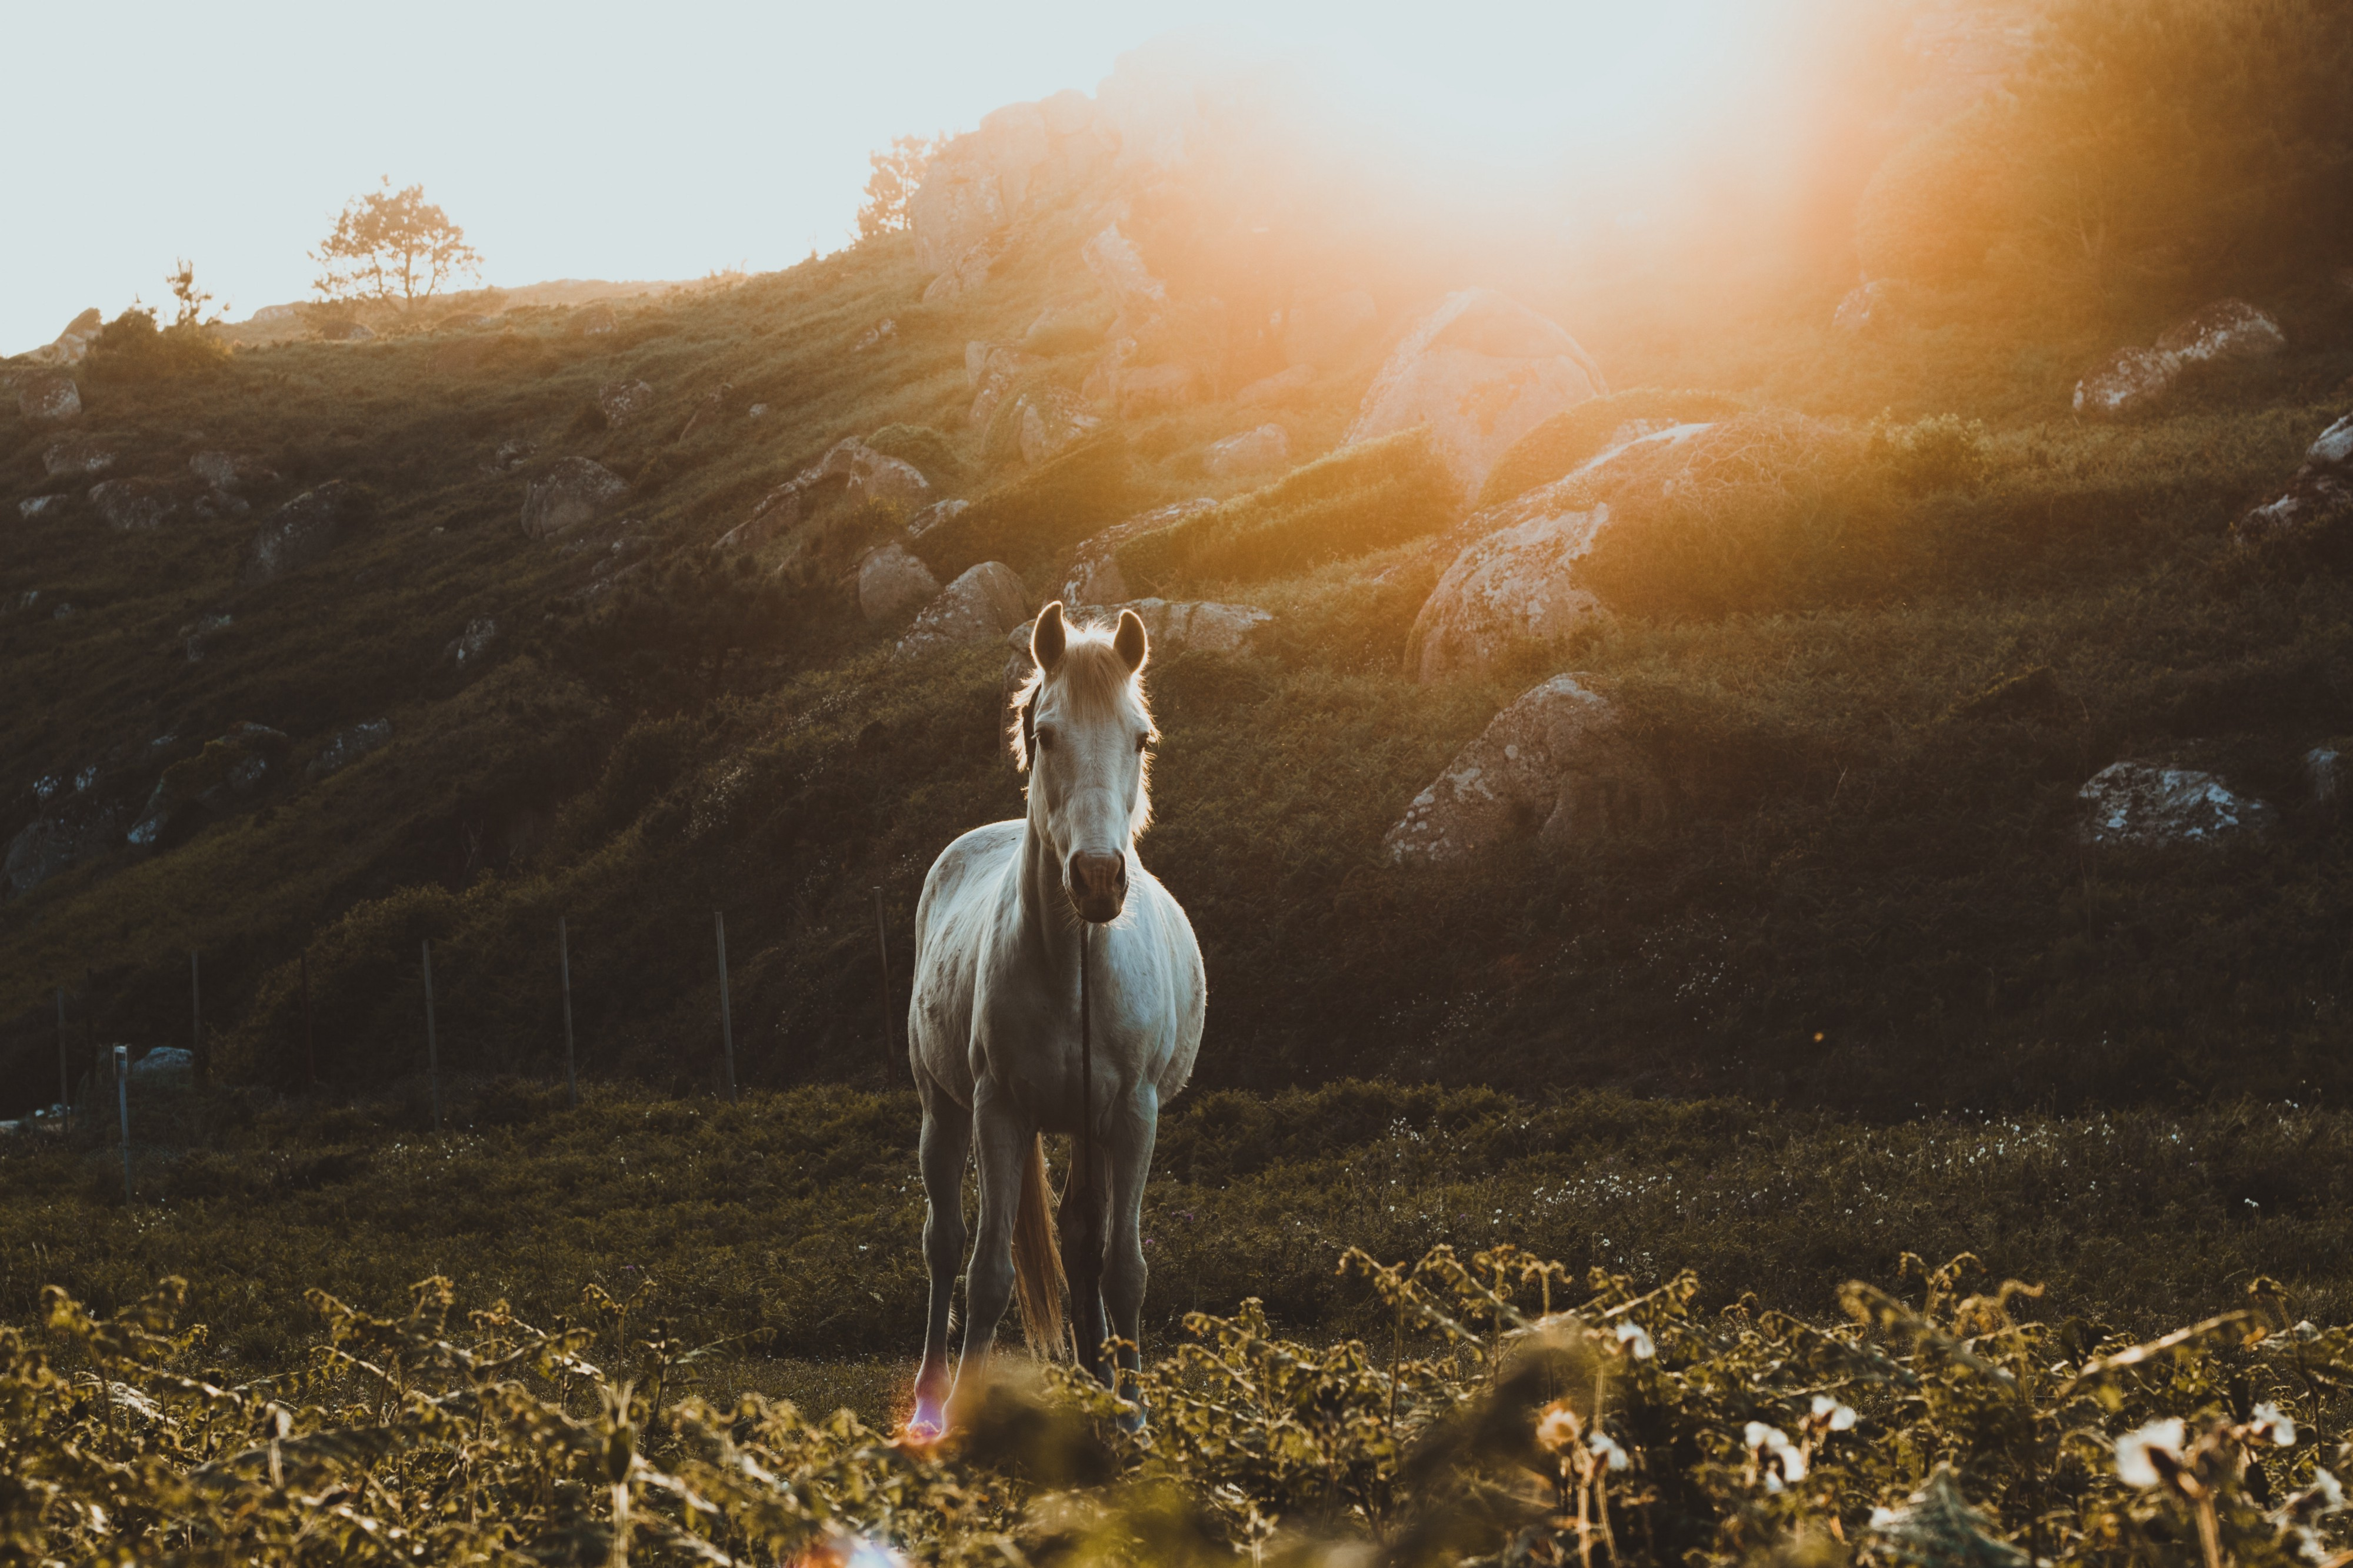 The Parable Of The Old Man And The White Horse By Zach Arend Live Your Life On Purpose Medium